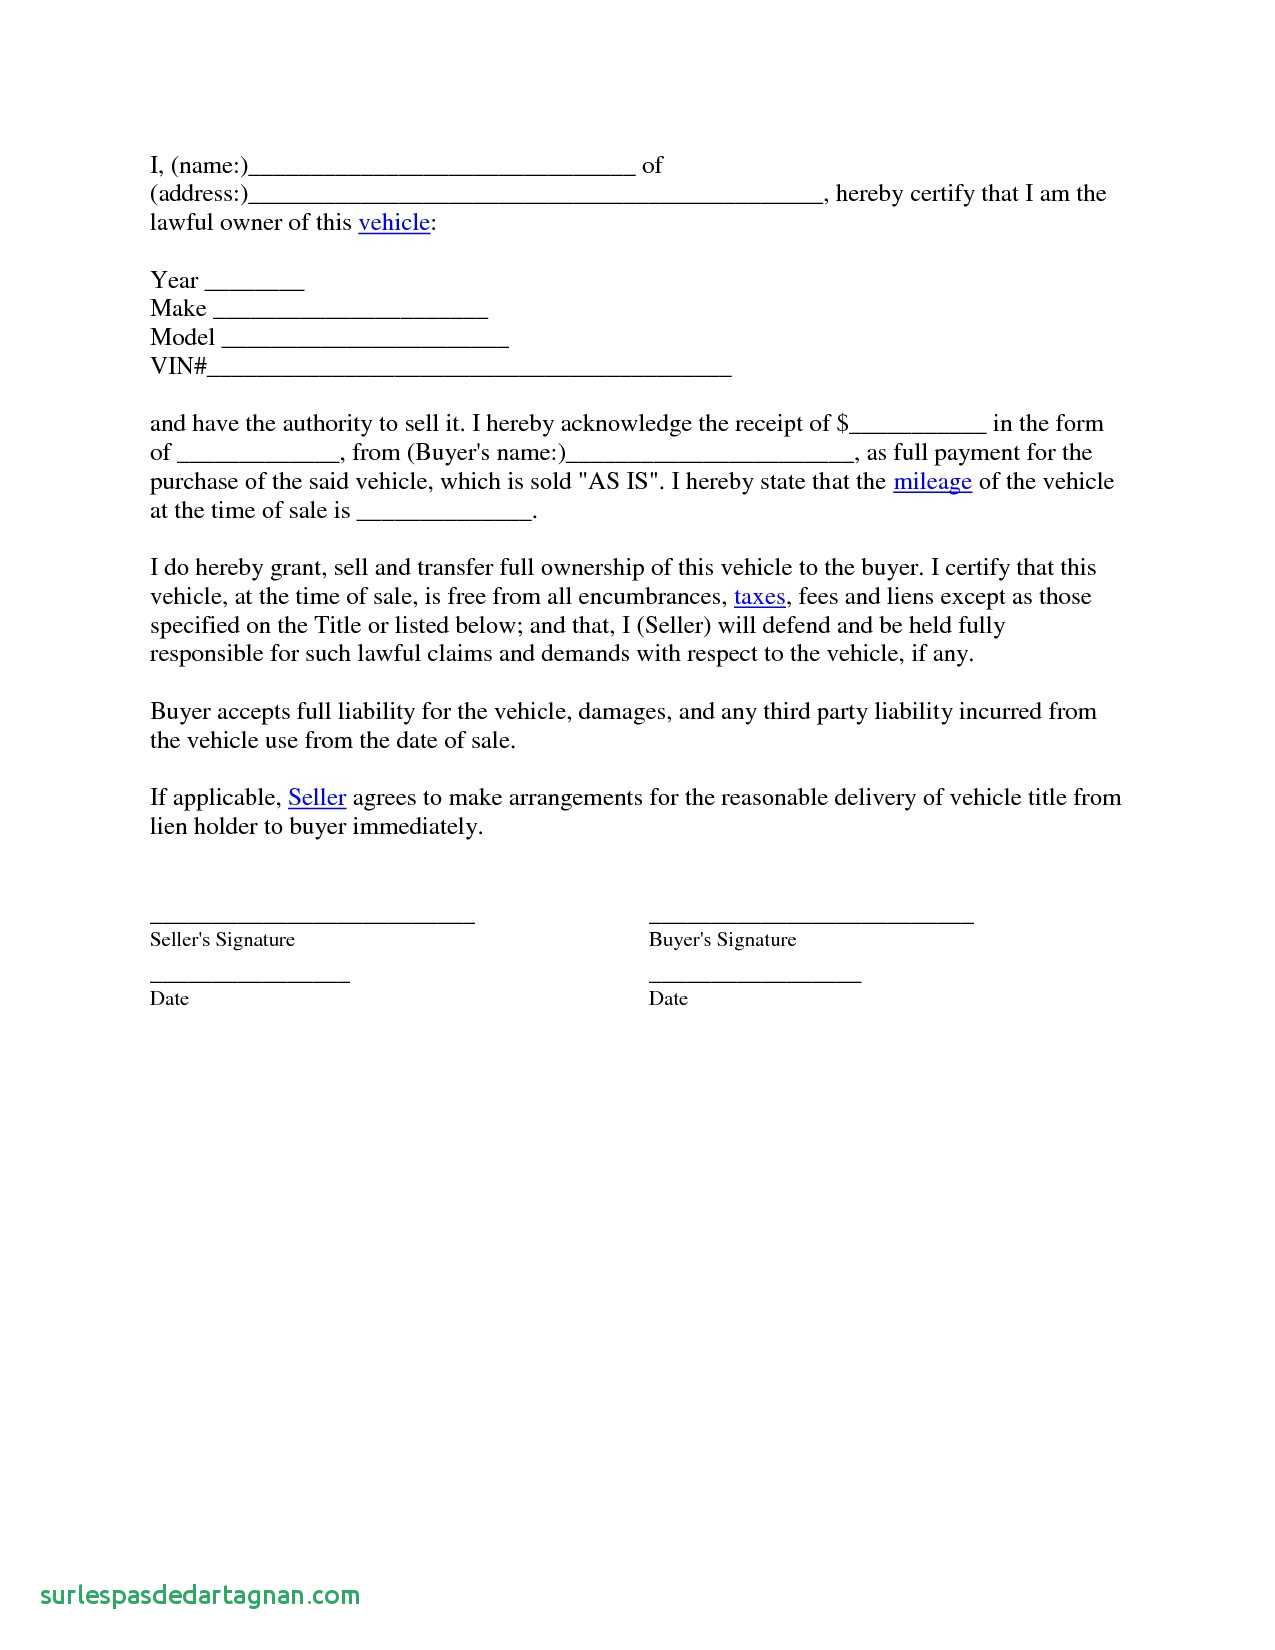 Letter Of Agreement Template Between Two Parties - Vehicle Sales Agreement Beautiful toyota Proace Long Diesel 2 0d 120